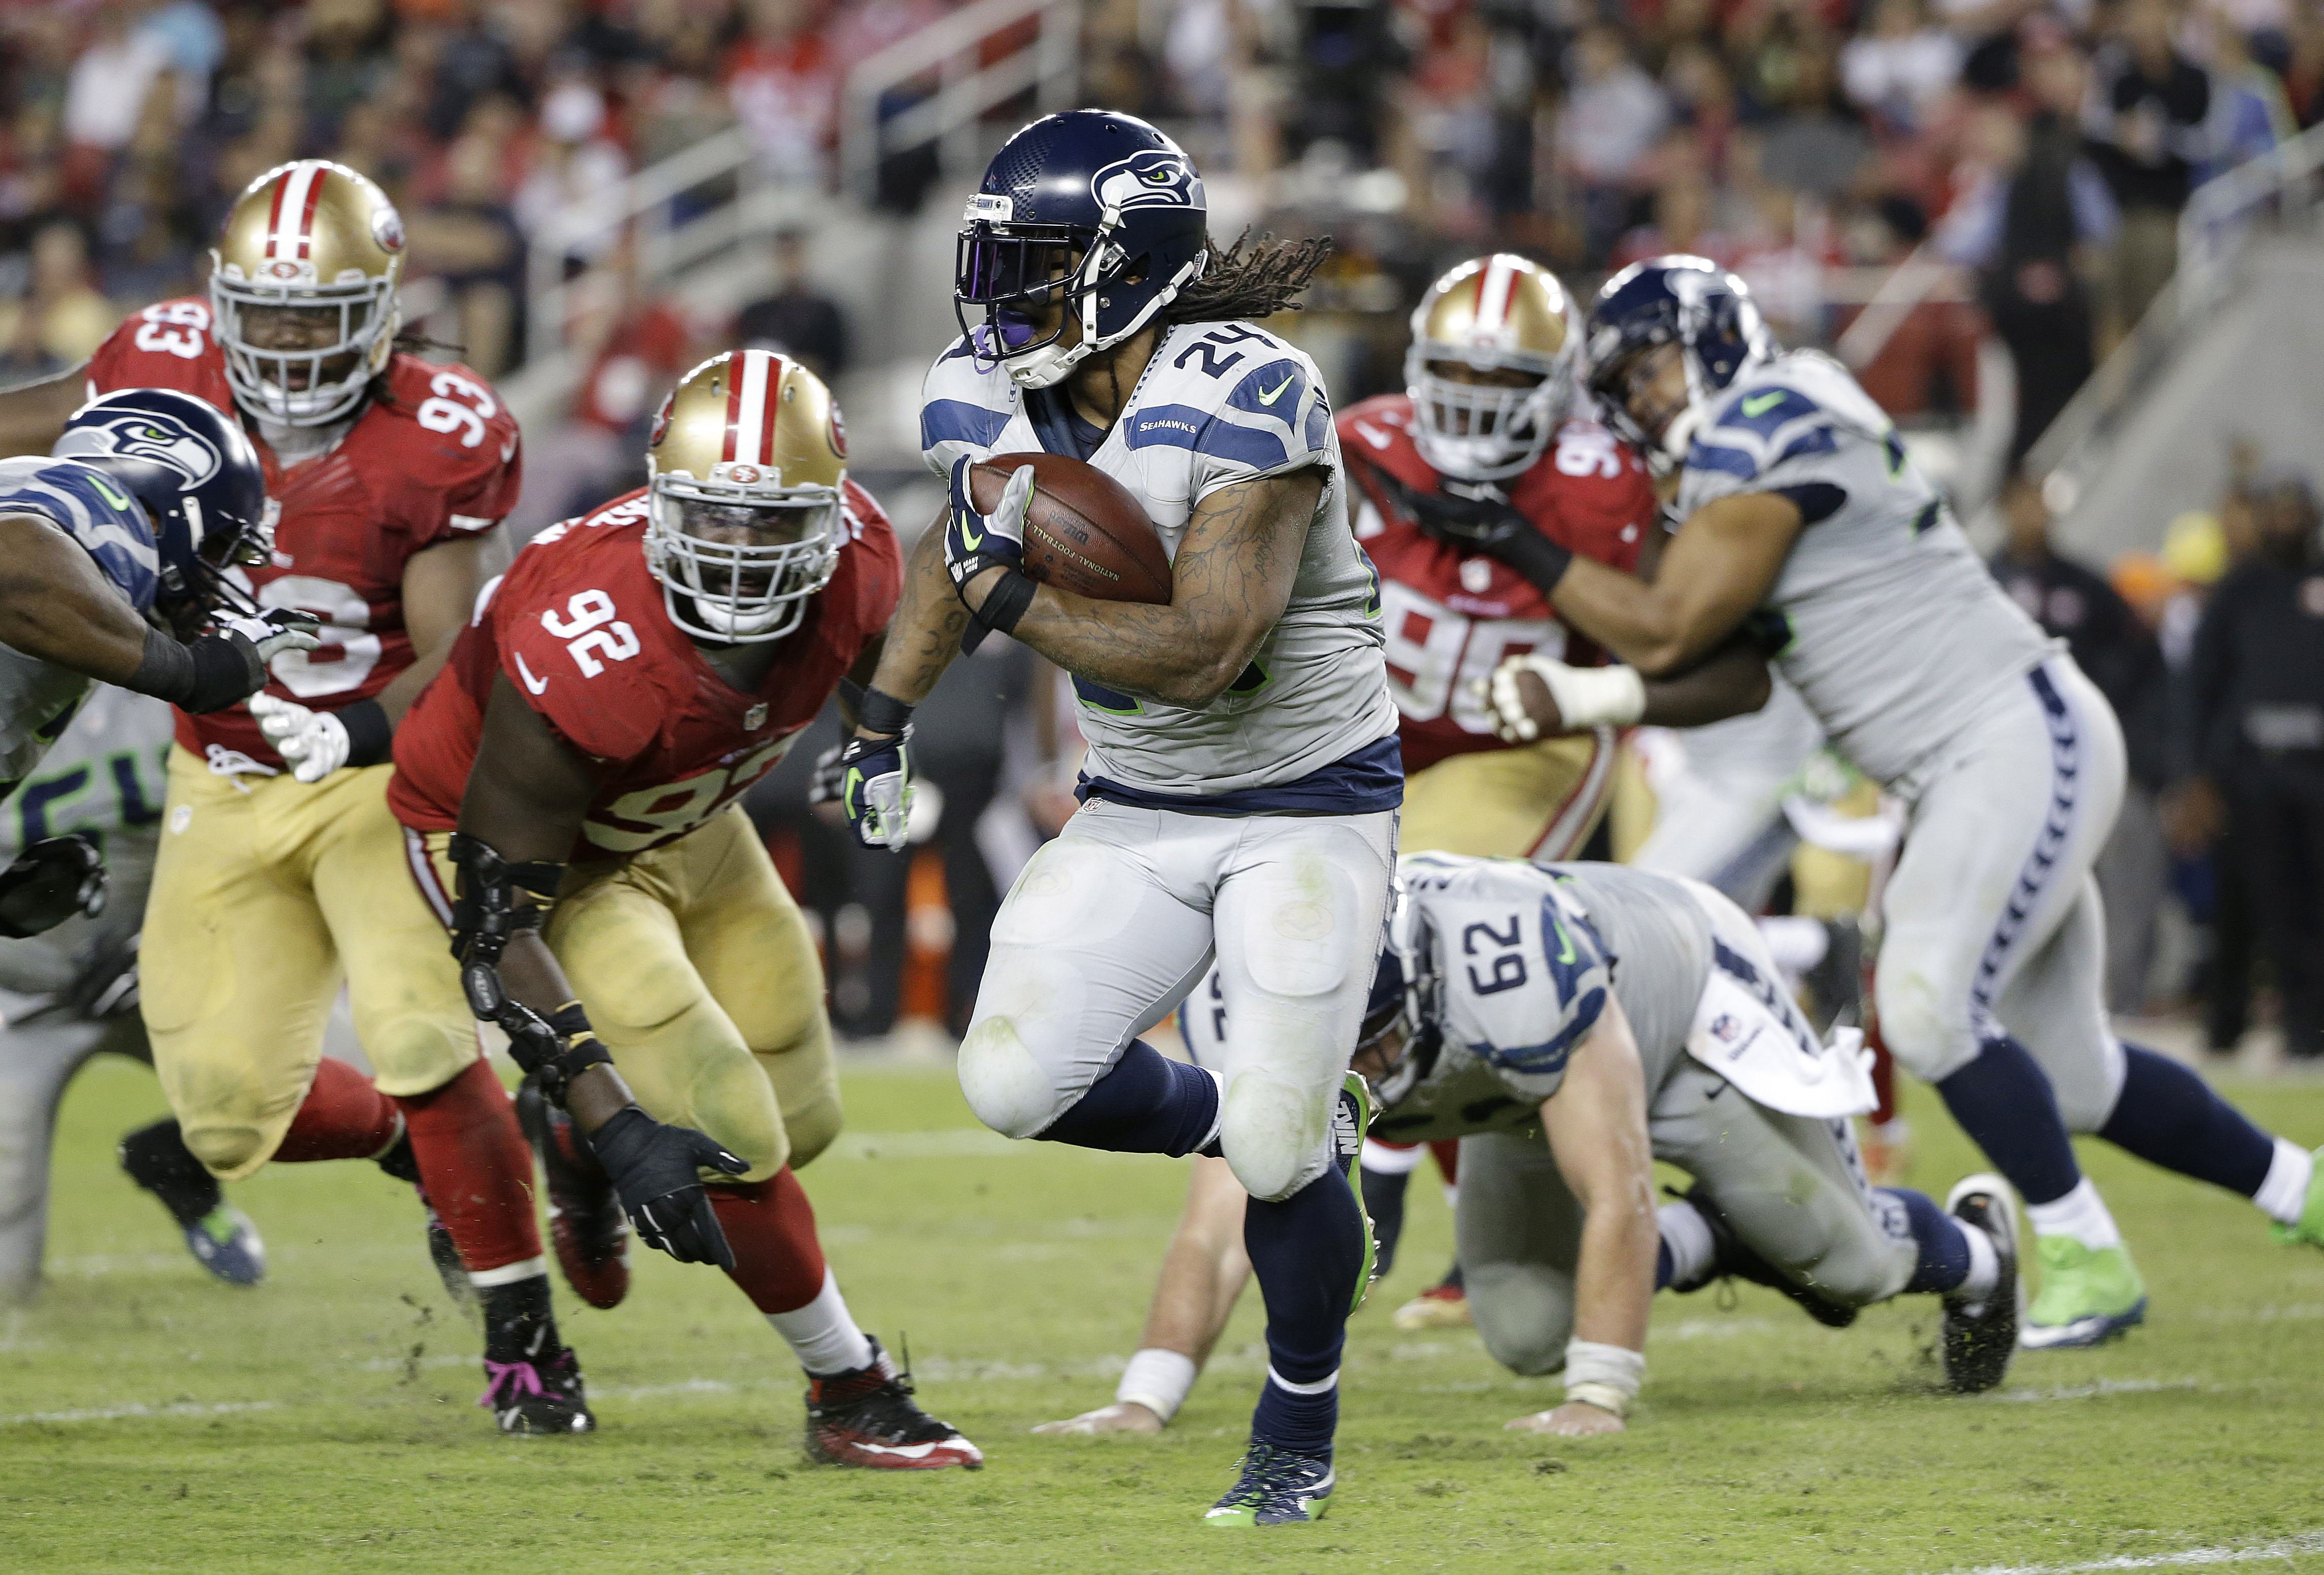 FILE - In this Oct. 22, 2015, file photo, Seattle Seahawks running back Marshawn Lynch (24) runs against San Francisco 49ers defensive end Quinton Dial (92) during the second half of an NFL football game in Santa Clara, Calif. Marshawn Lynch has rejoined